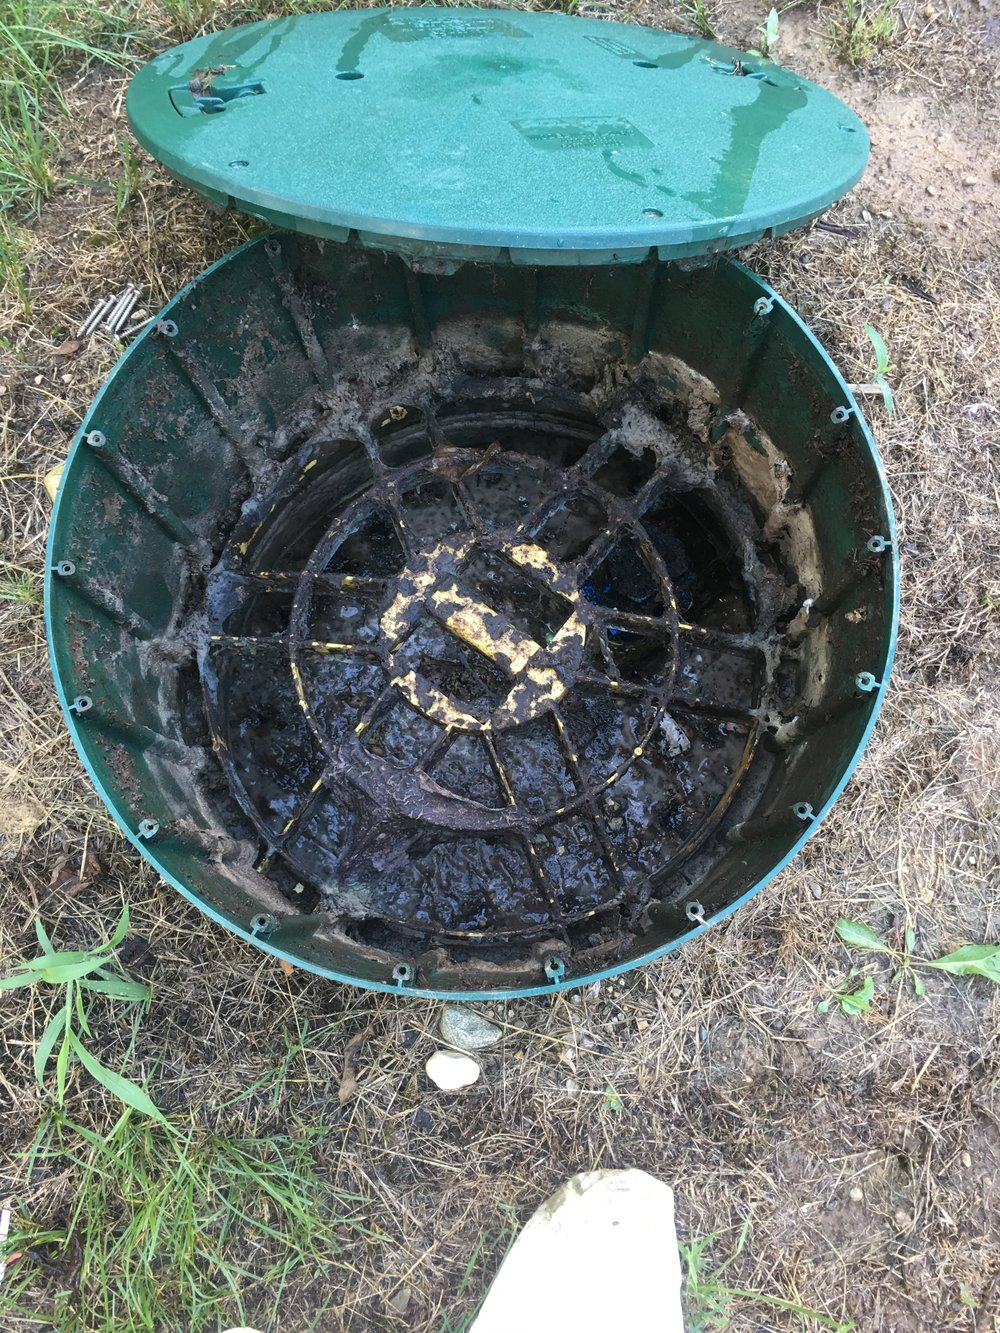 Scum layer had elevated as a result of the Filter needing changed, possibly had not been pumped in awhile. It is recommended to have your septic pumped every 3-5 years. -